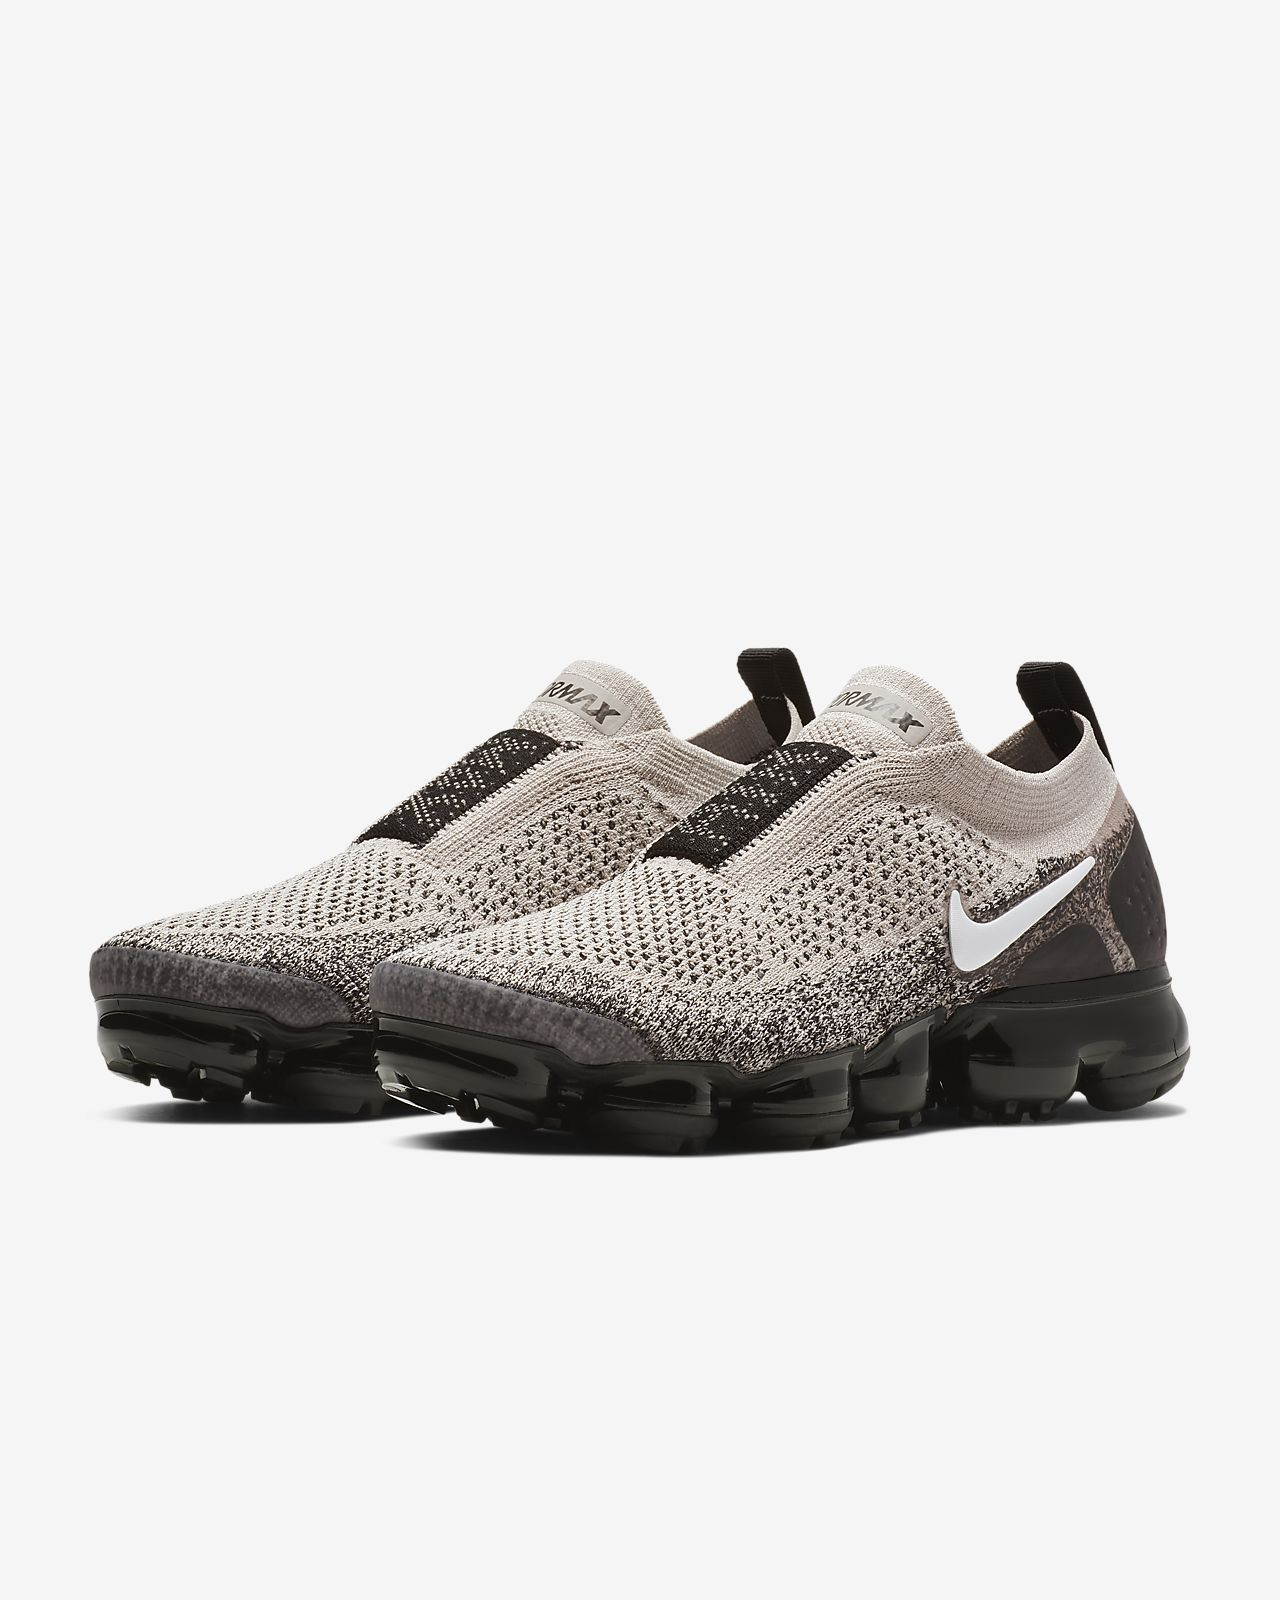 huge discount 03709 04993 ... Nike Air VaporMax Flyknit Moc 2 Womens Shoe